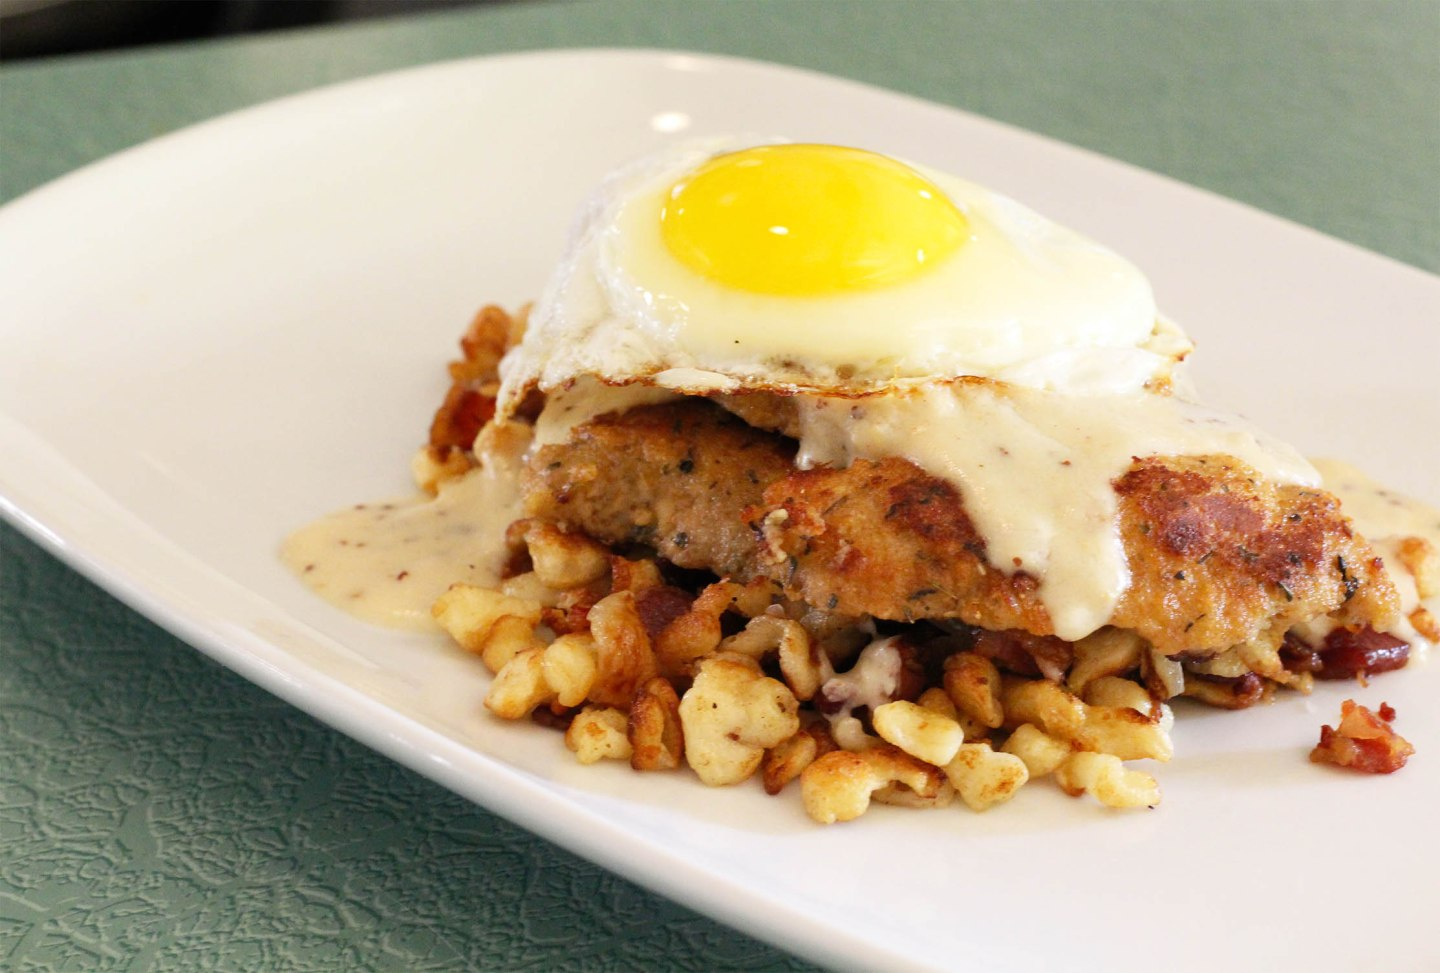 pork and spaetzle